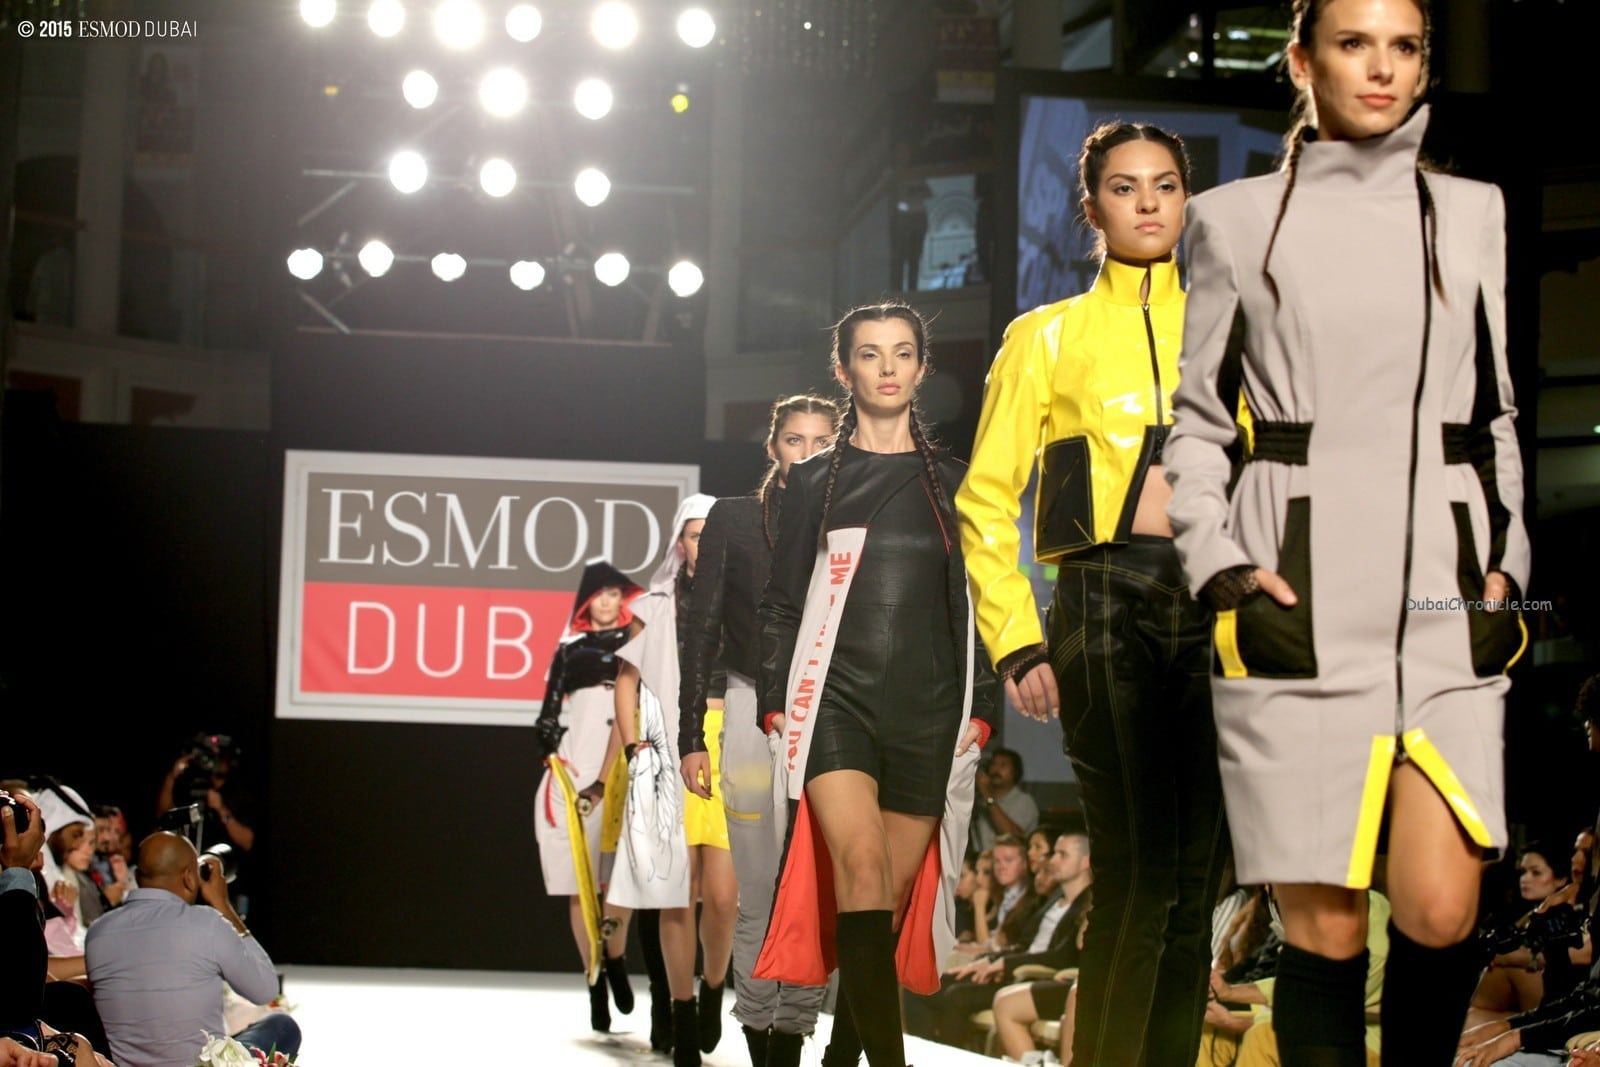 ESMOD Dubai 2015 Fashion Show - House of Dmello